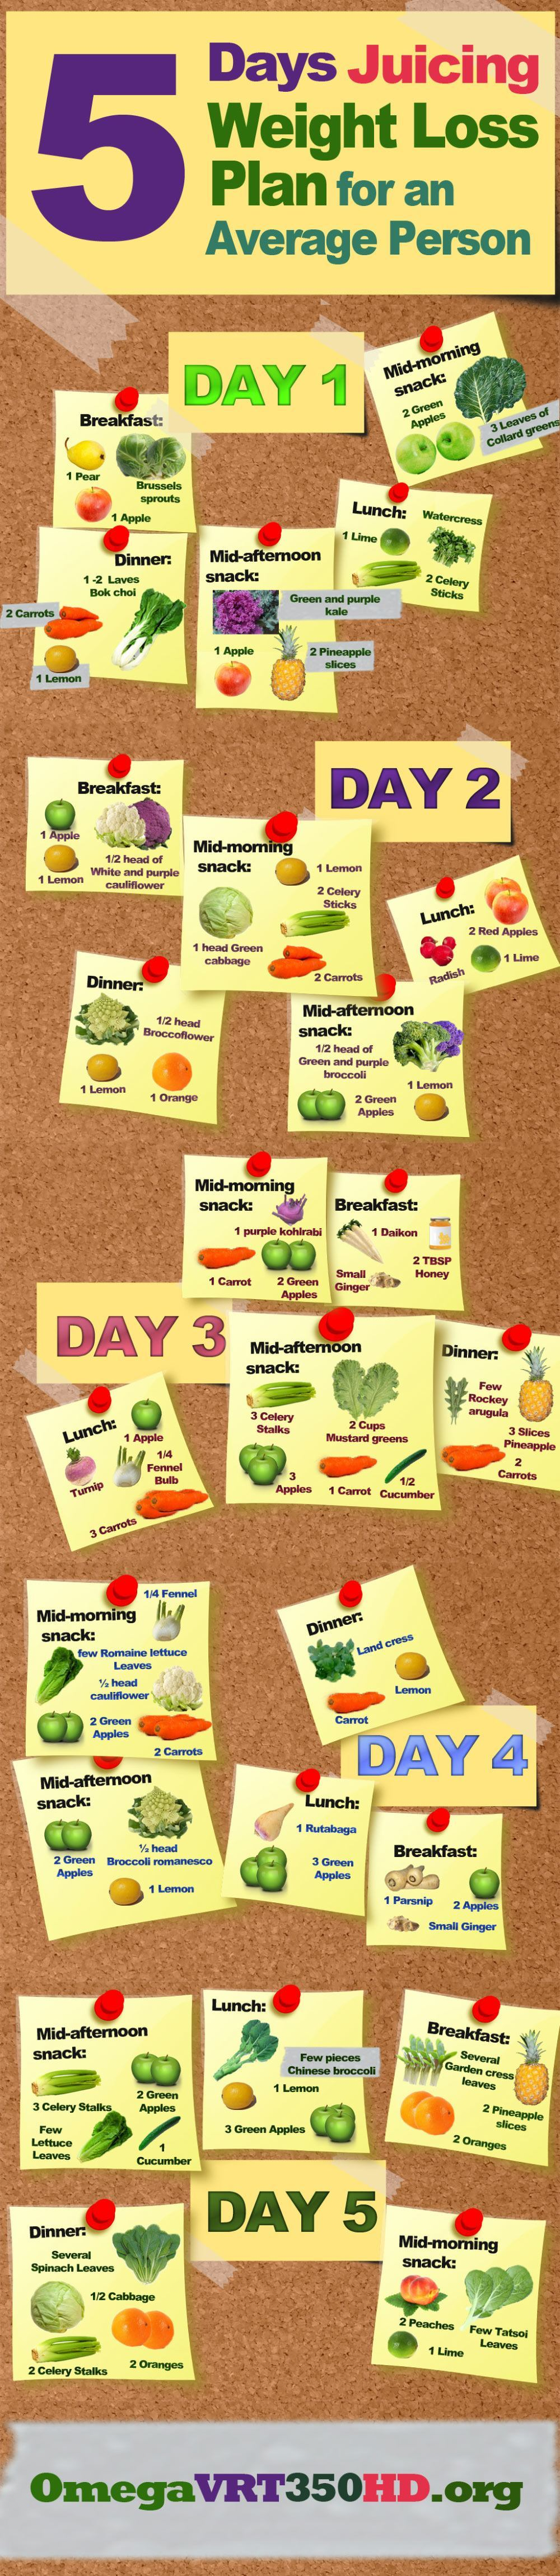 Juicing Plan for Weight Loss Infographic